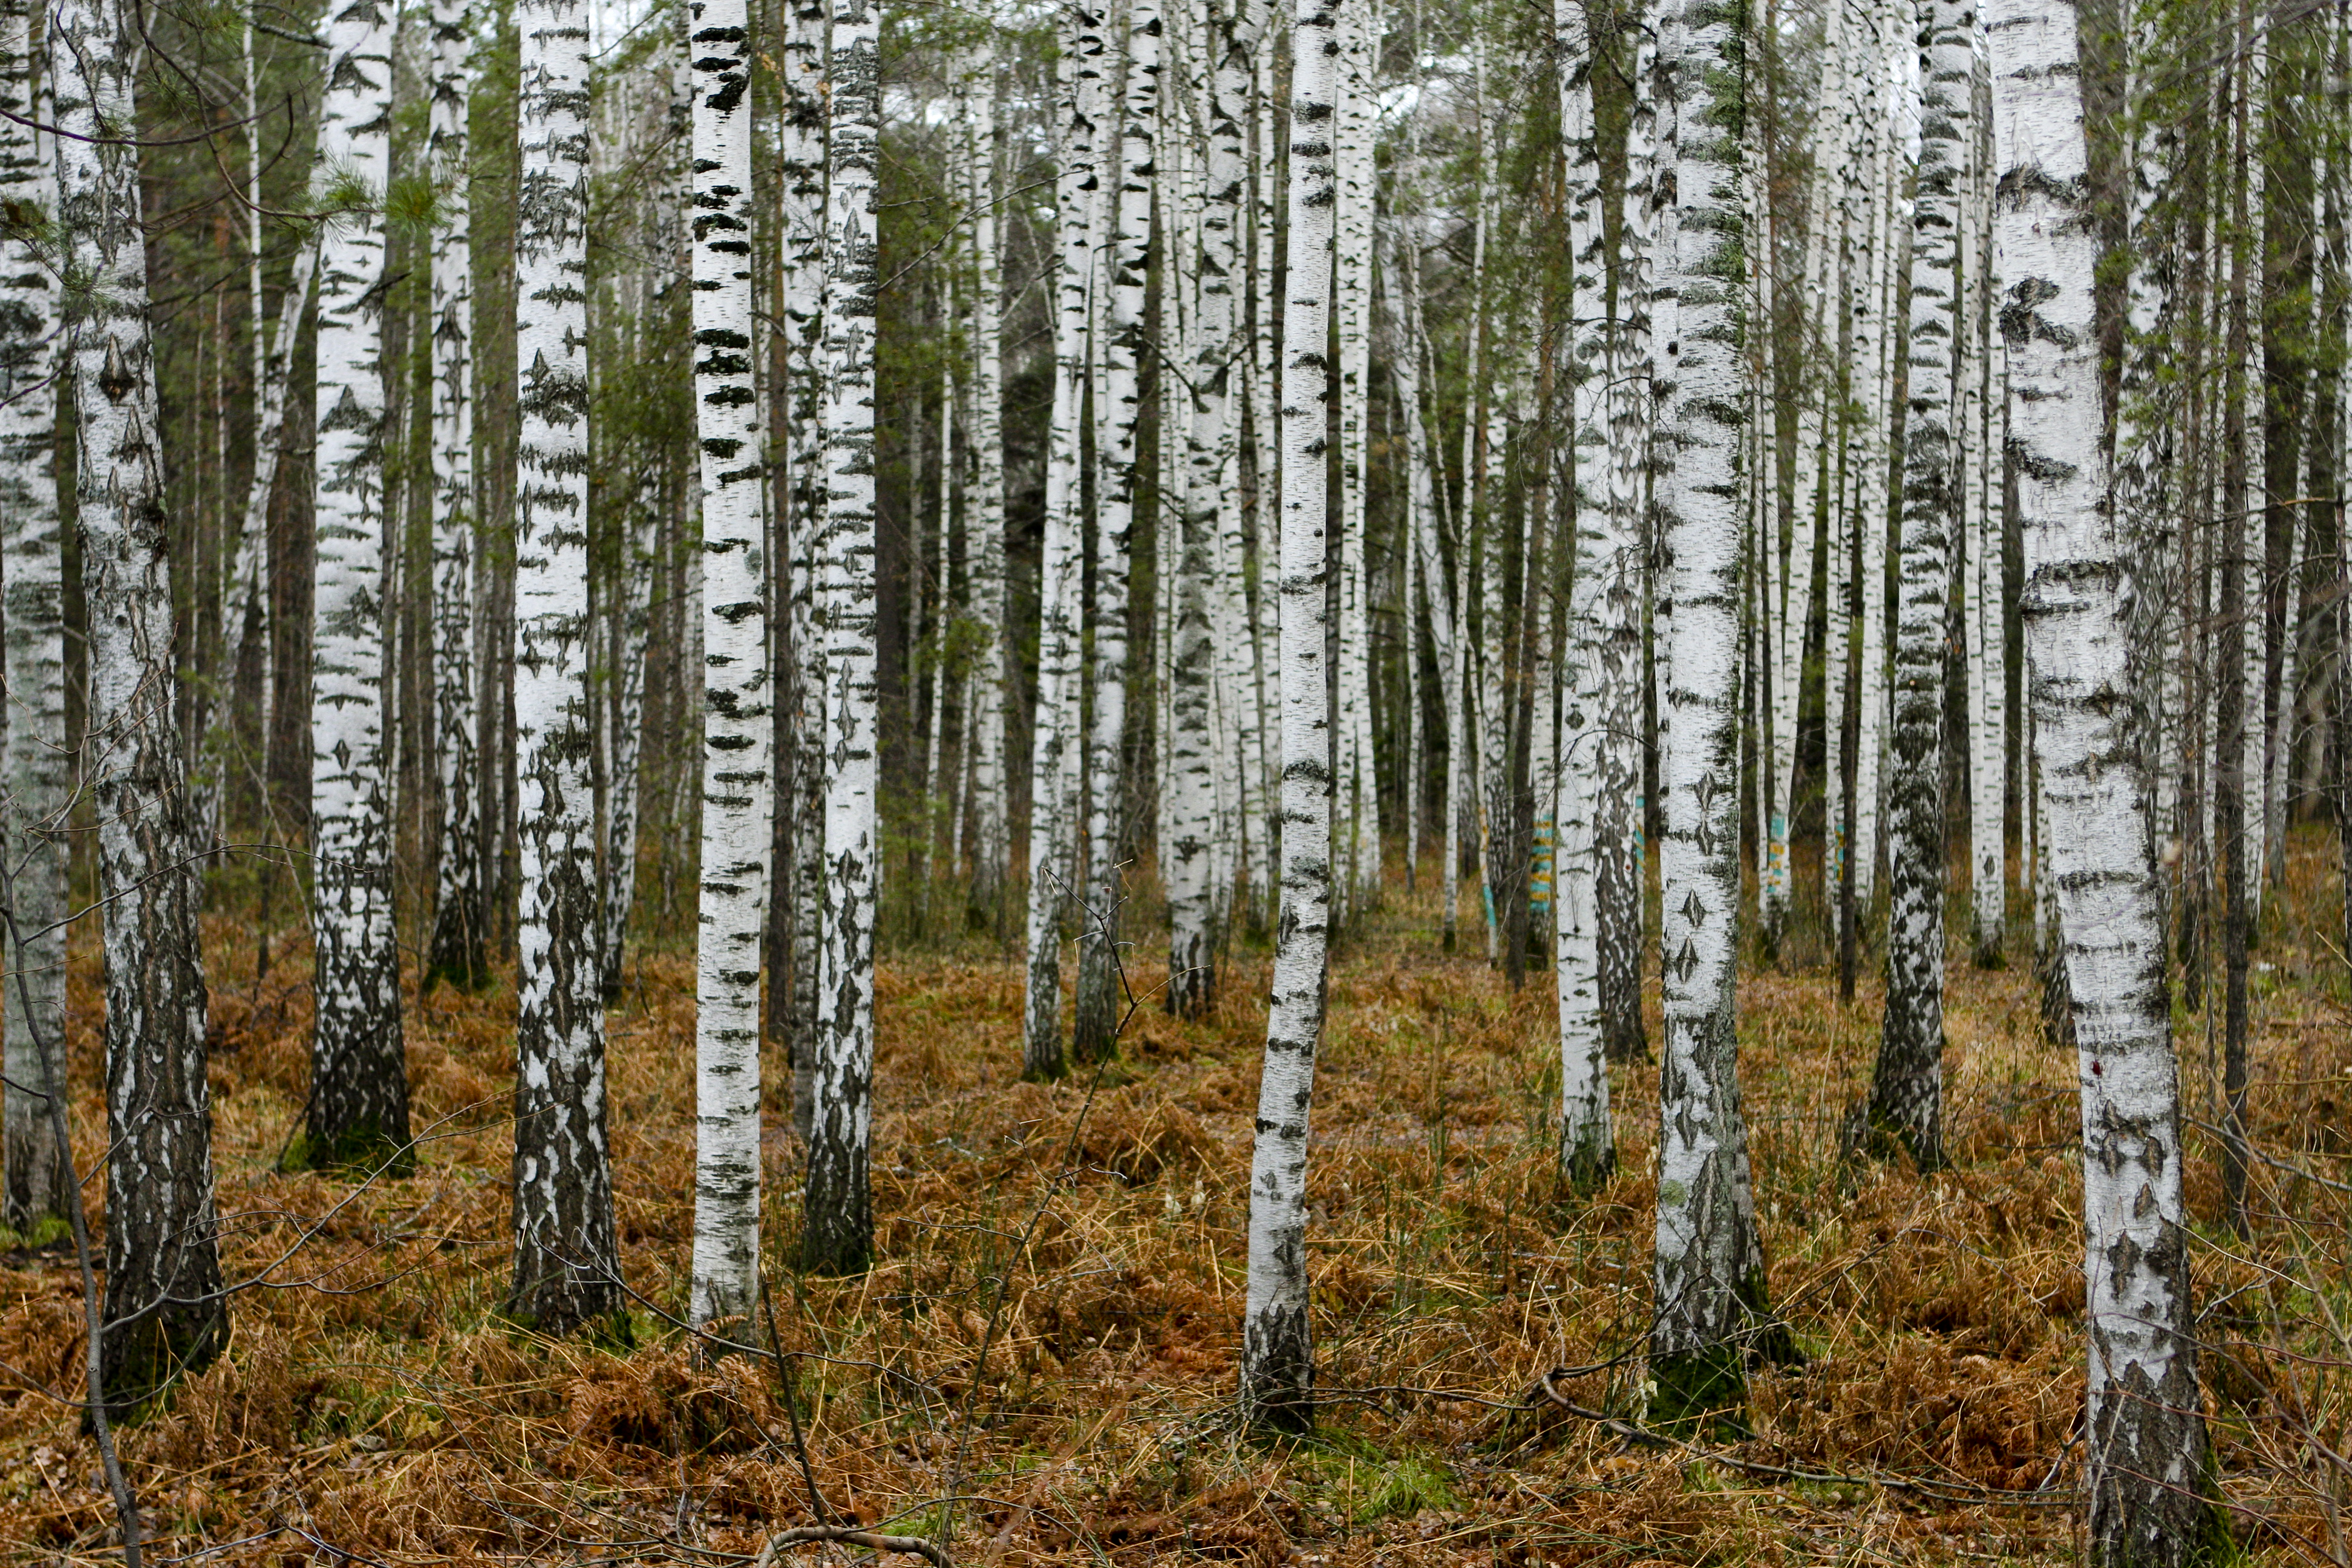 http://upload.wikimedia.org/wikipedia/commons/2/27/Birches_near_Novosibirsk_in_Autumn.jpg